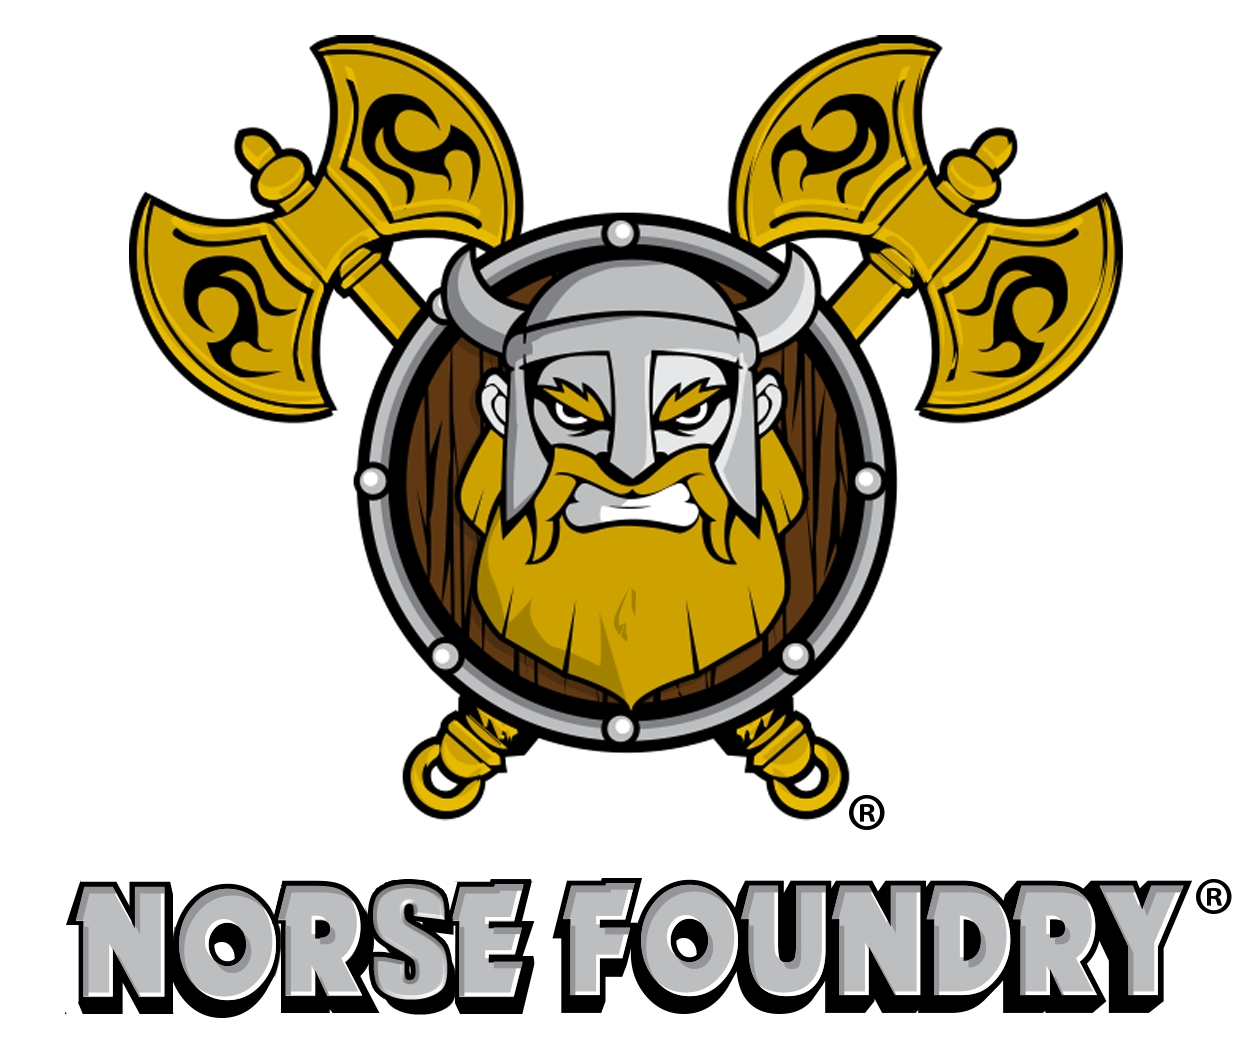 Norse Foundry Eventeny Aqw cyber monday rares 2019 shop and item showcase on a budget! norse foundry eventeny